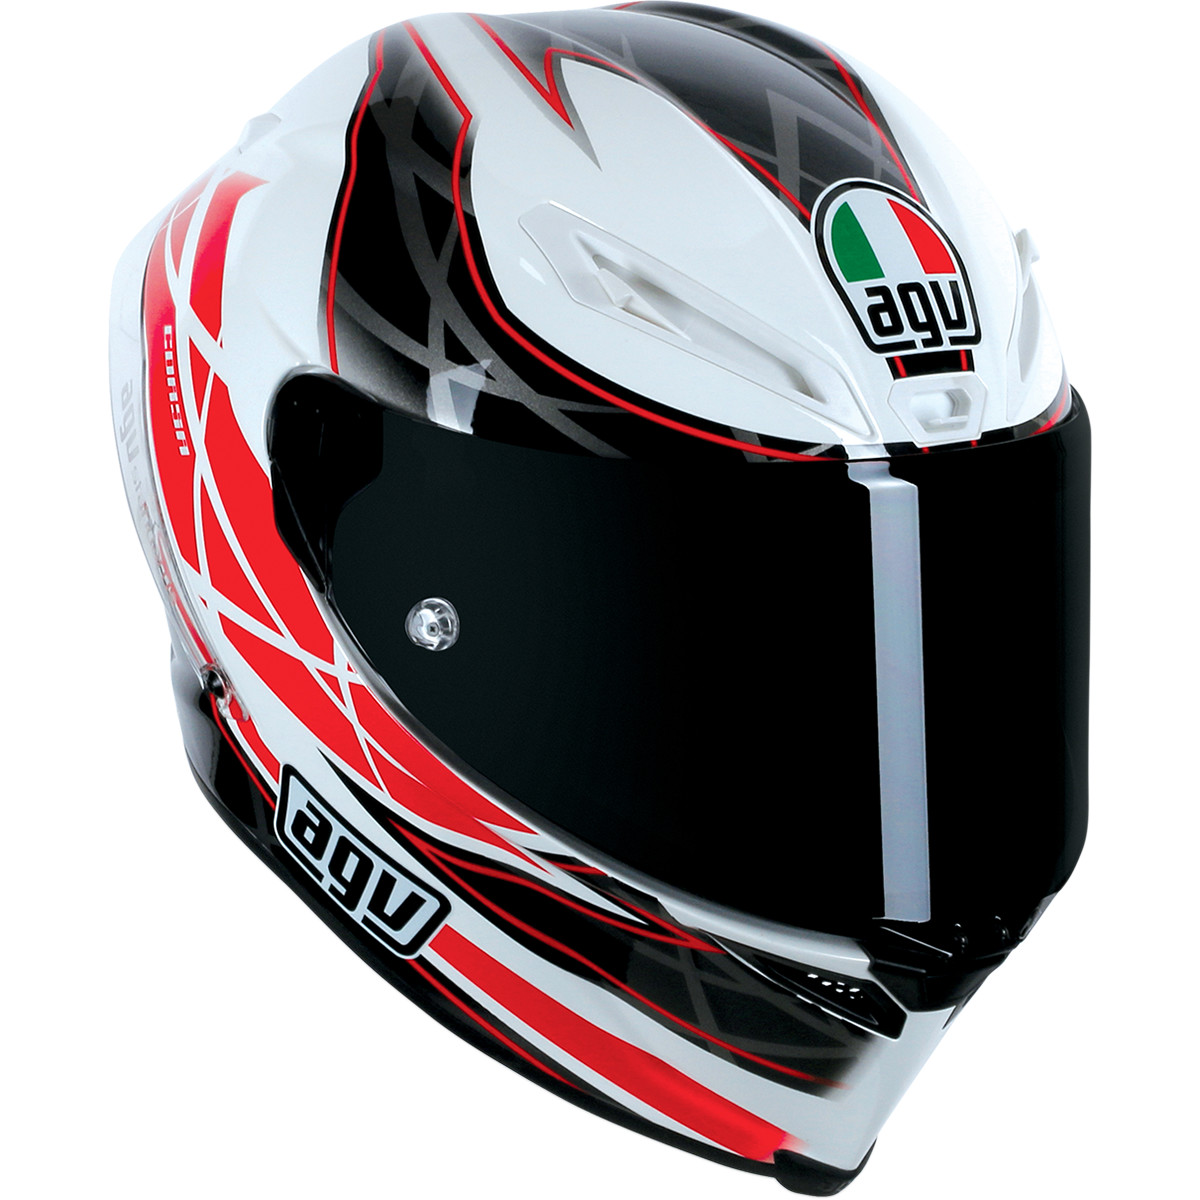 AGV Corsa 5Hundred (500) Motorcycle Race Helmet White/Black/Red